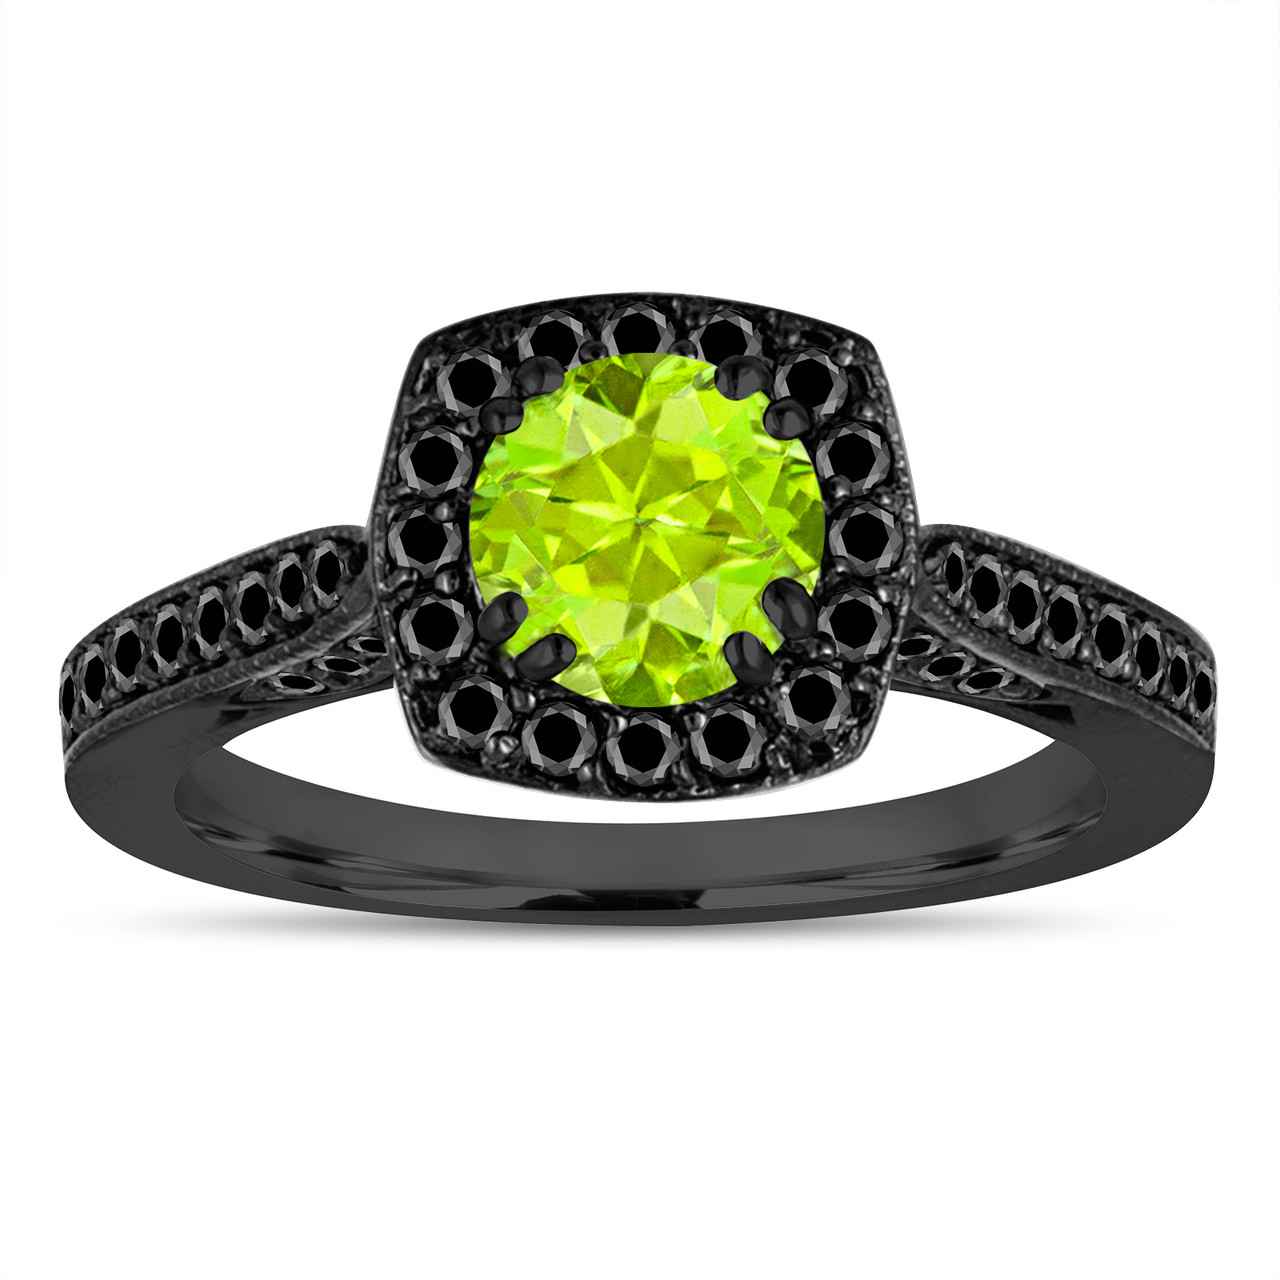 en rings jewelry platinum large us diamond lxrandco pre vintage peridot estate ring engagement silver fr tone luxury owned